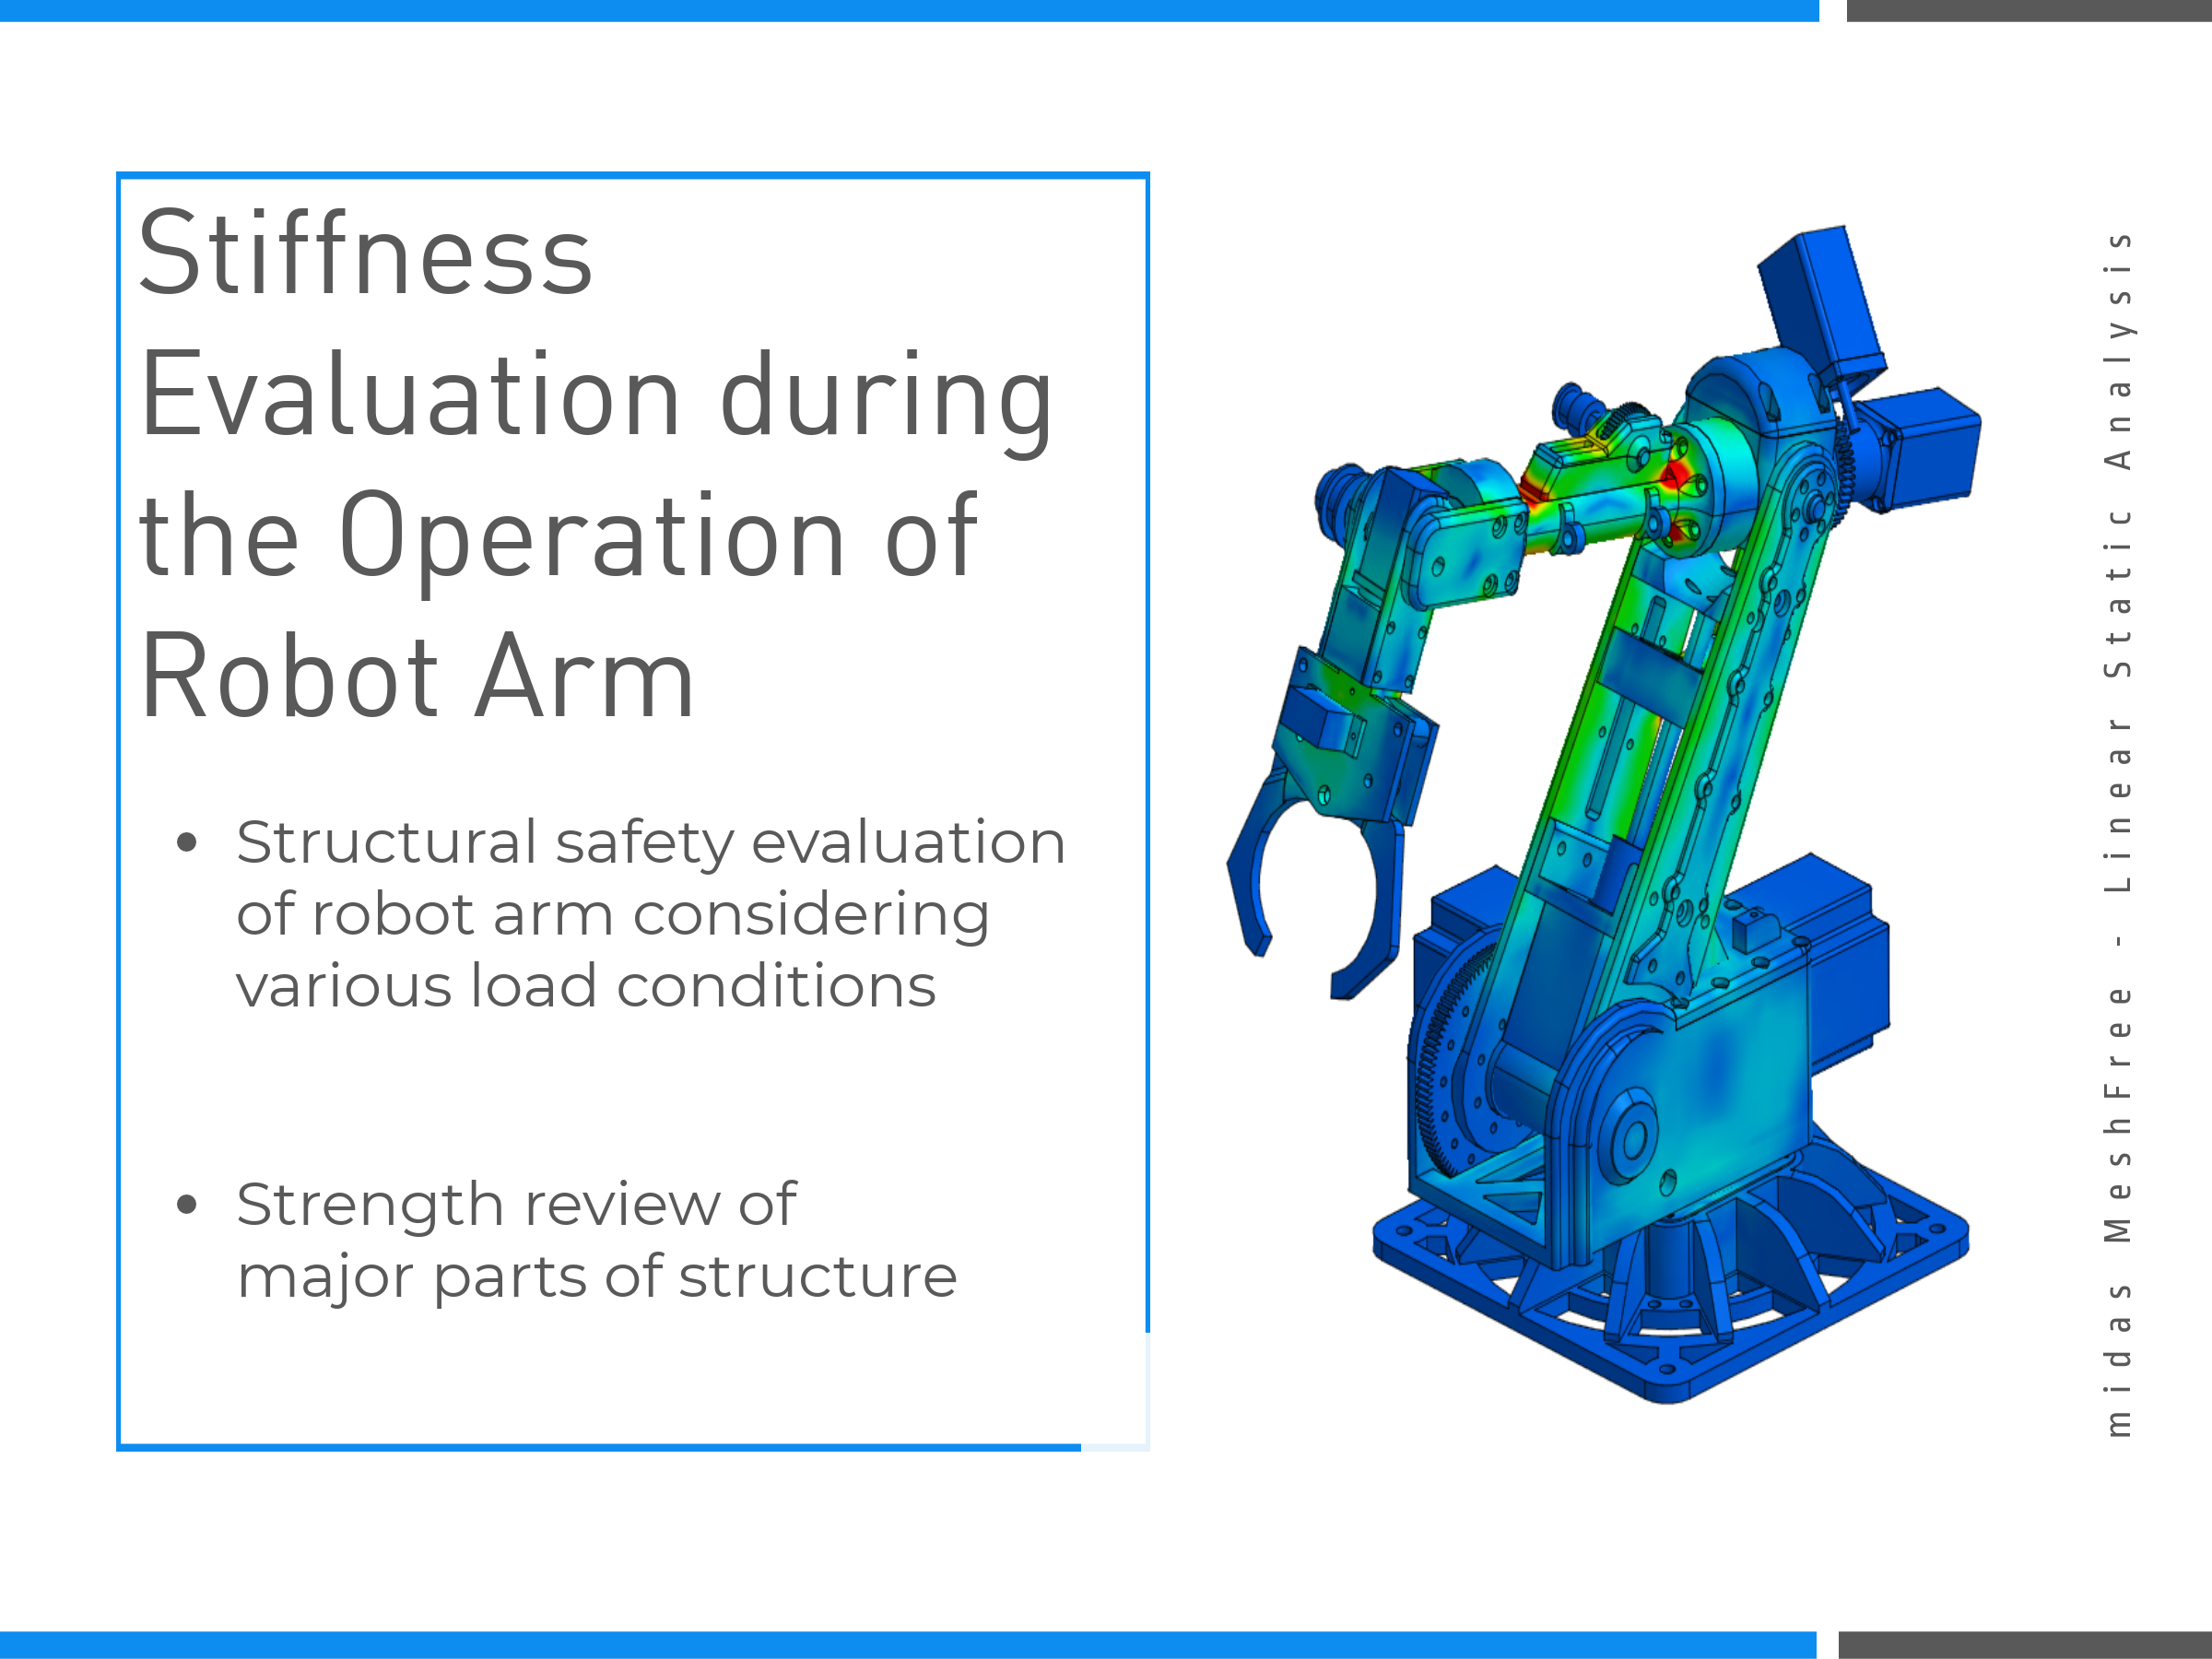 Stiffness Evaluation during the Operation of Robot Arm on MeshFree (Slide 4)